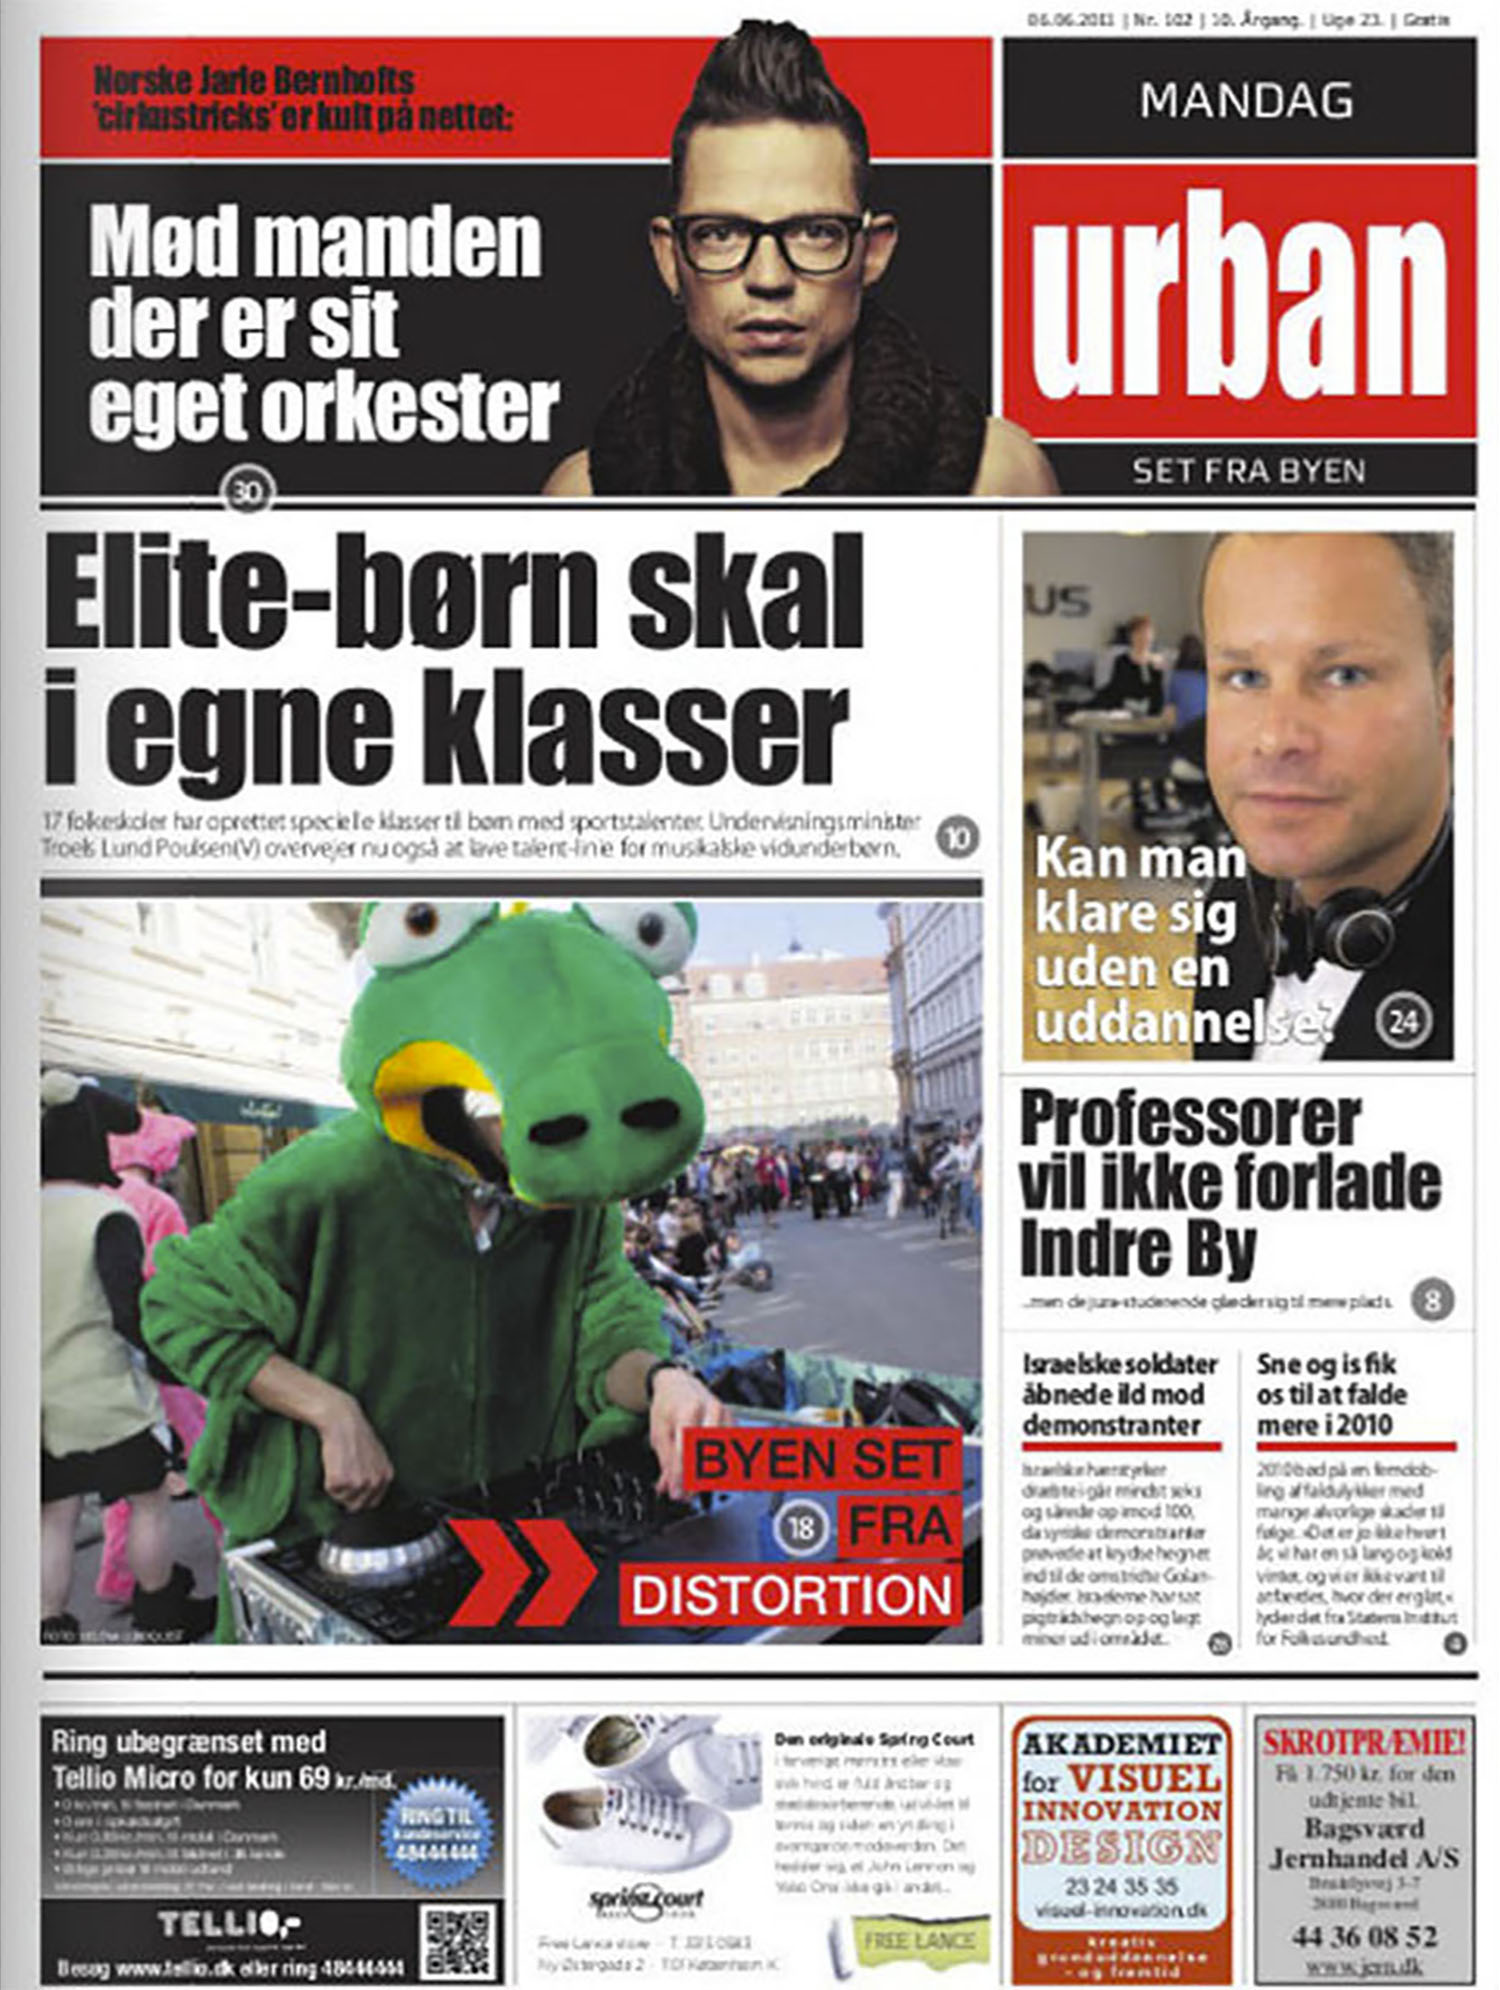 Distortion 2010 - Urban Newspaper